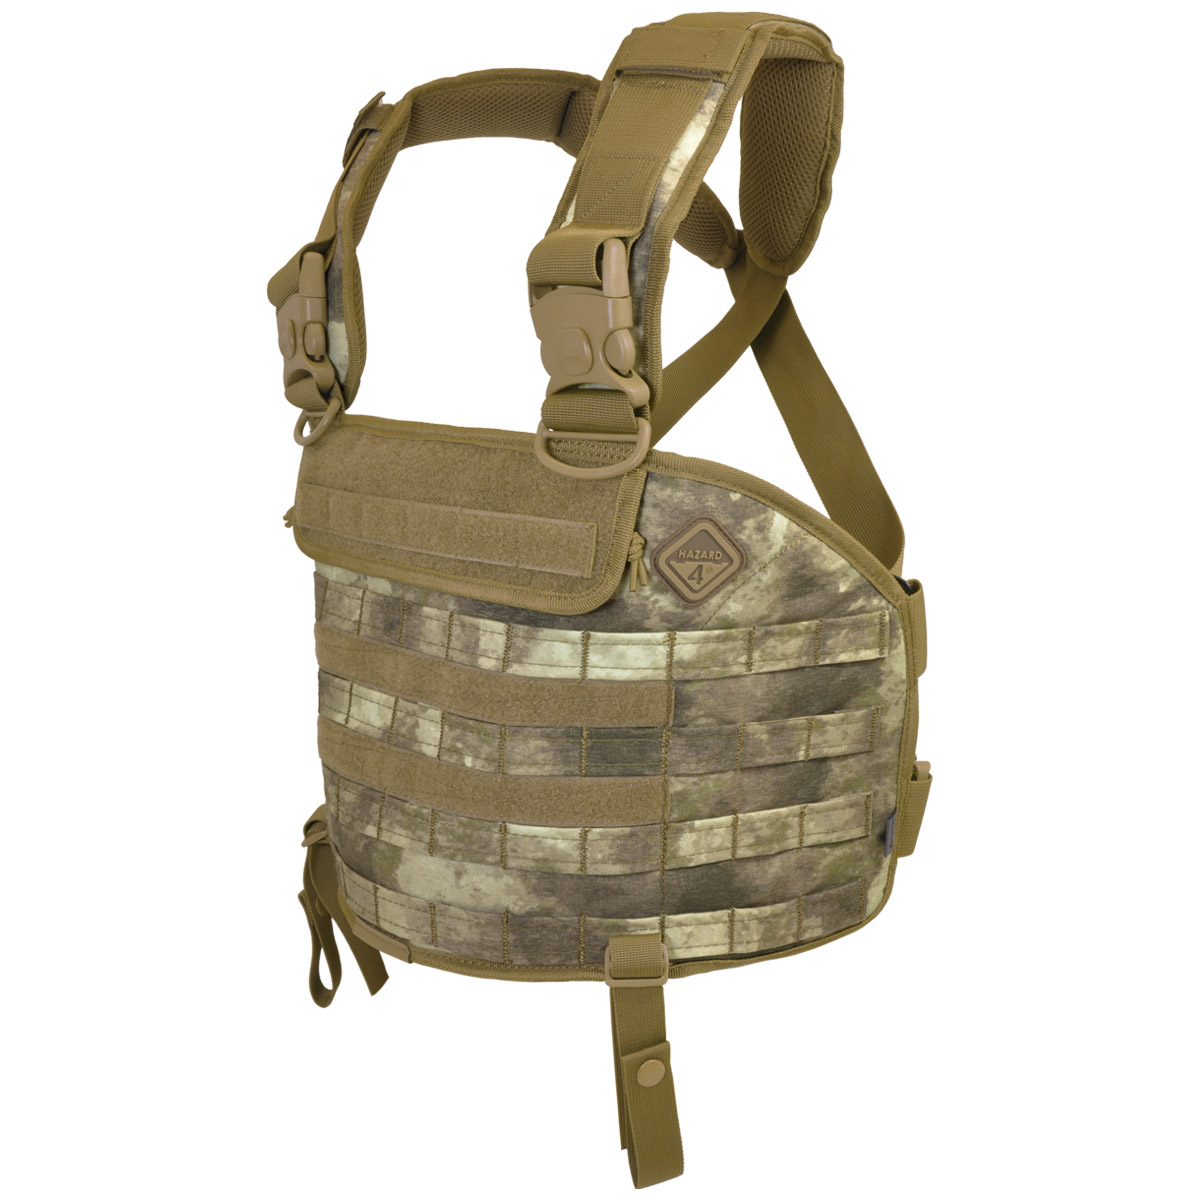 Hazard 4 Frontline Molle Chest Rig Airsoft Hunting Combat